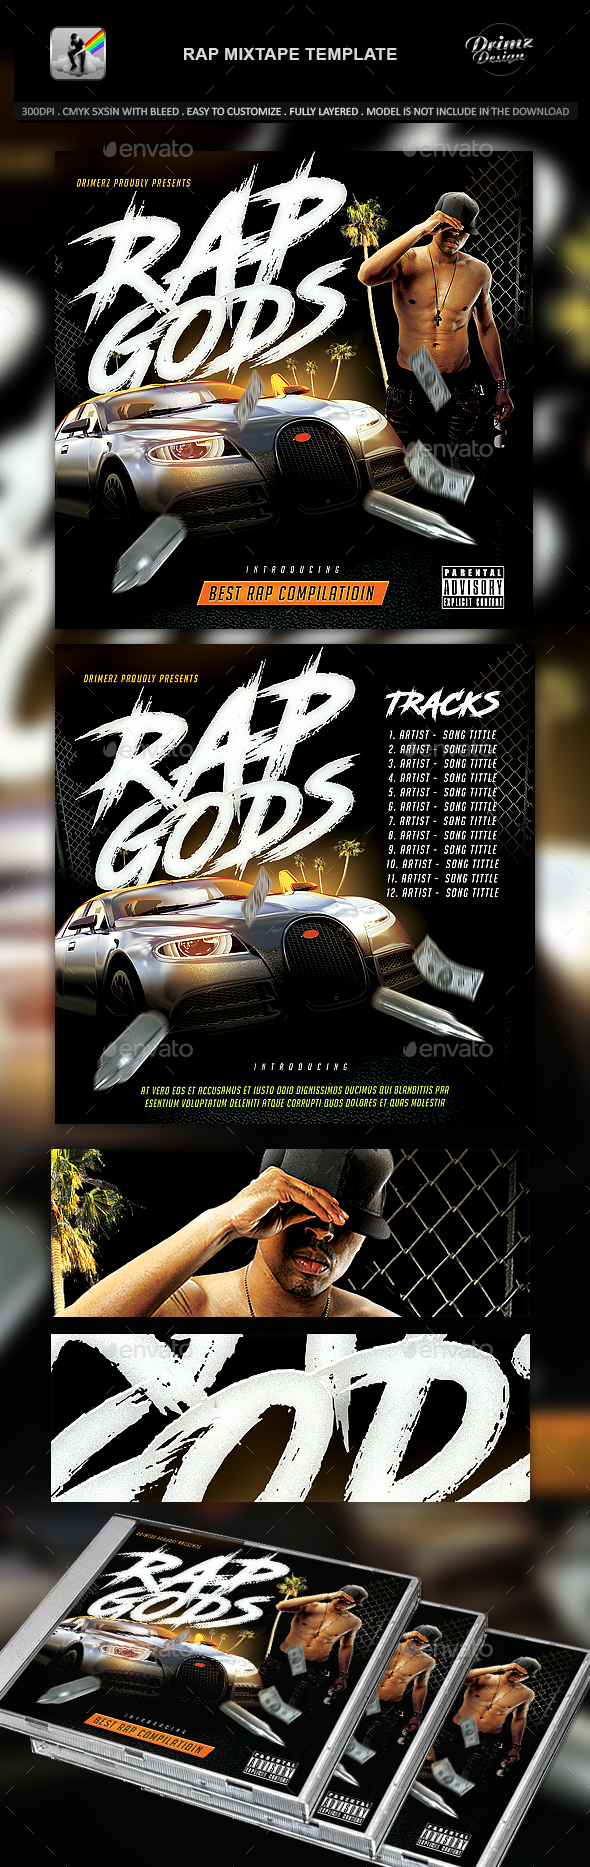 Rap Mixtape Template - CD & DVD Artwork Print Templates